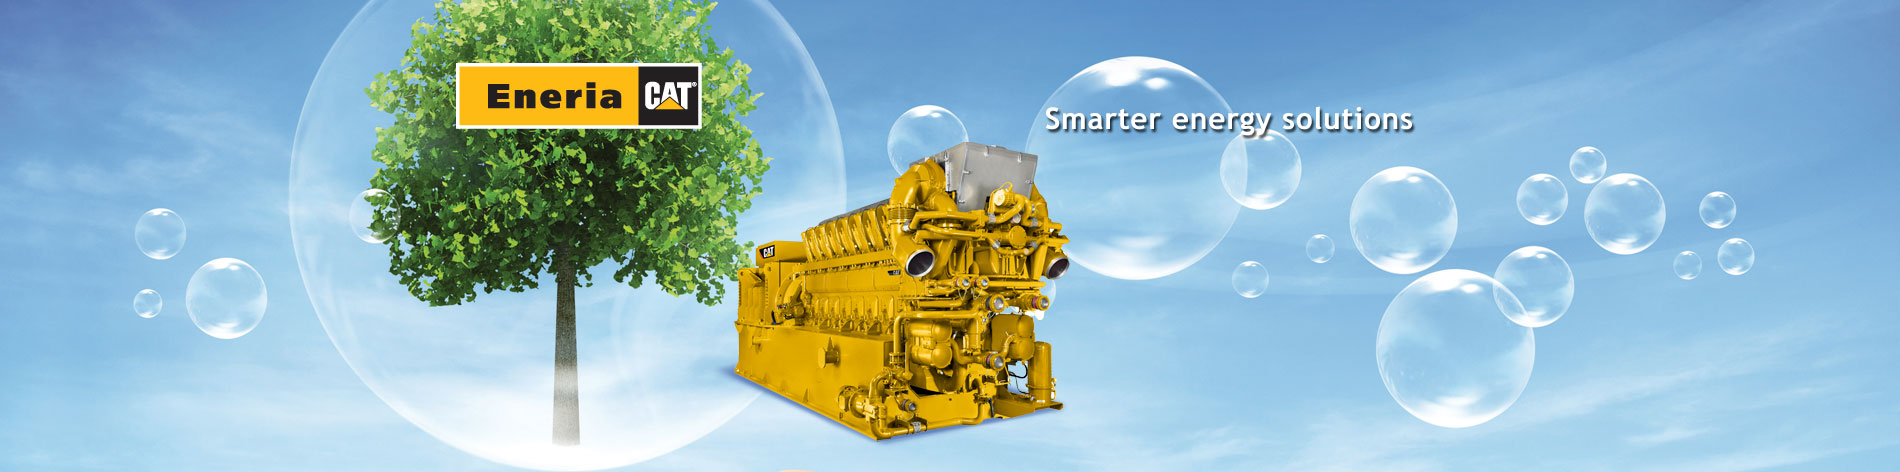 Whether gas or biogas, from 60 kWe to 4,500 kWe we install Caterpillar generator sets that meet your heating, cooling or power needs.